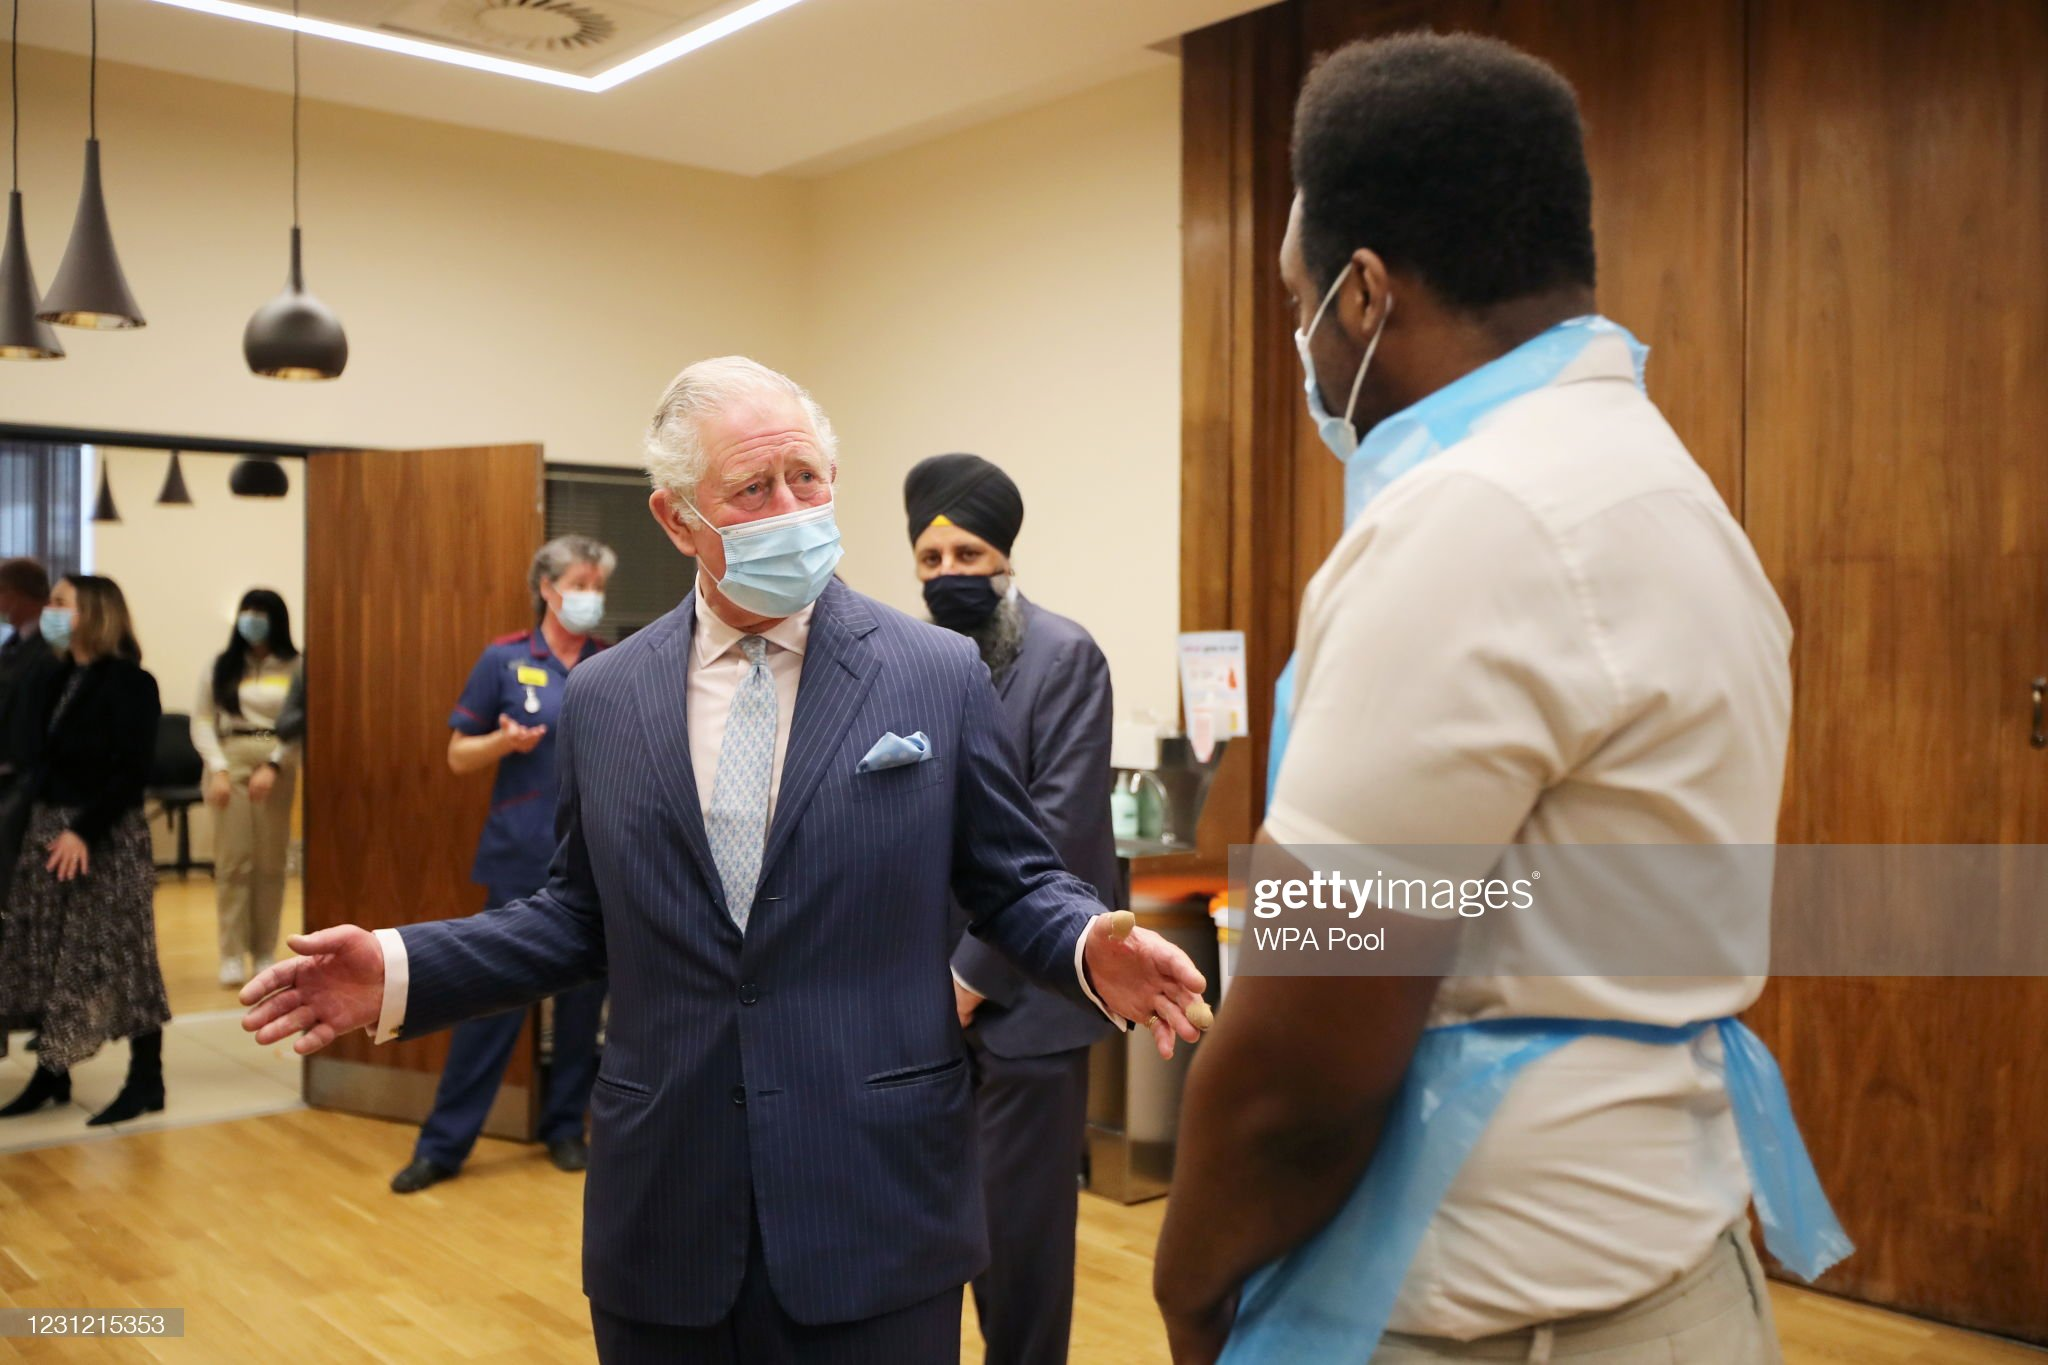 prince-charles-prince-of-wales-speaks-to-a-member-of-staff-during-a-picture-id1231215353